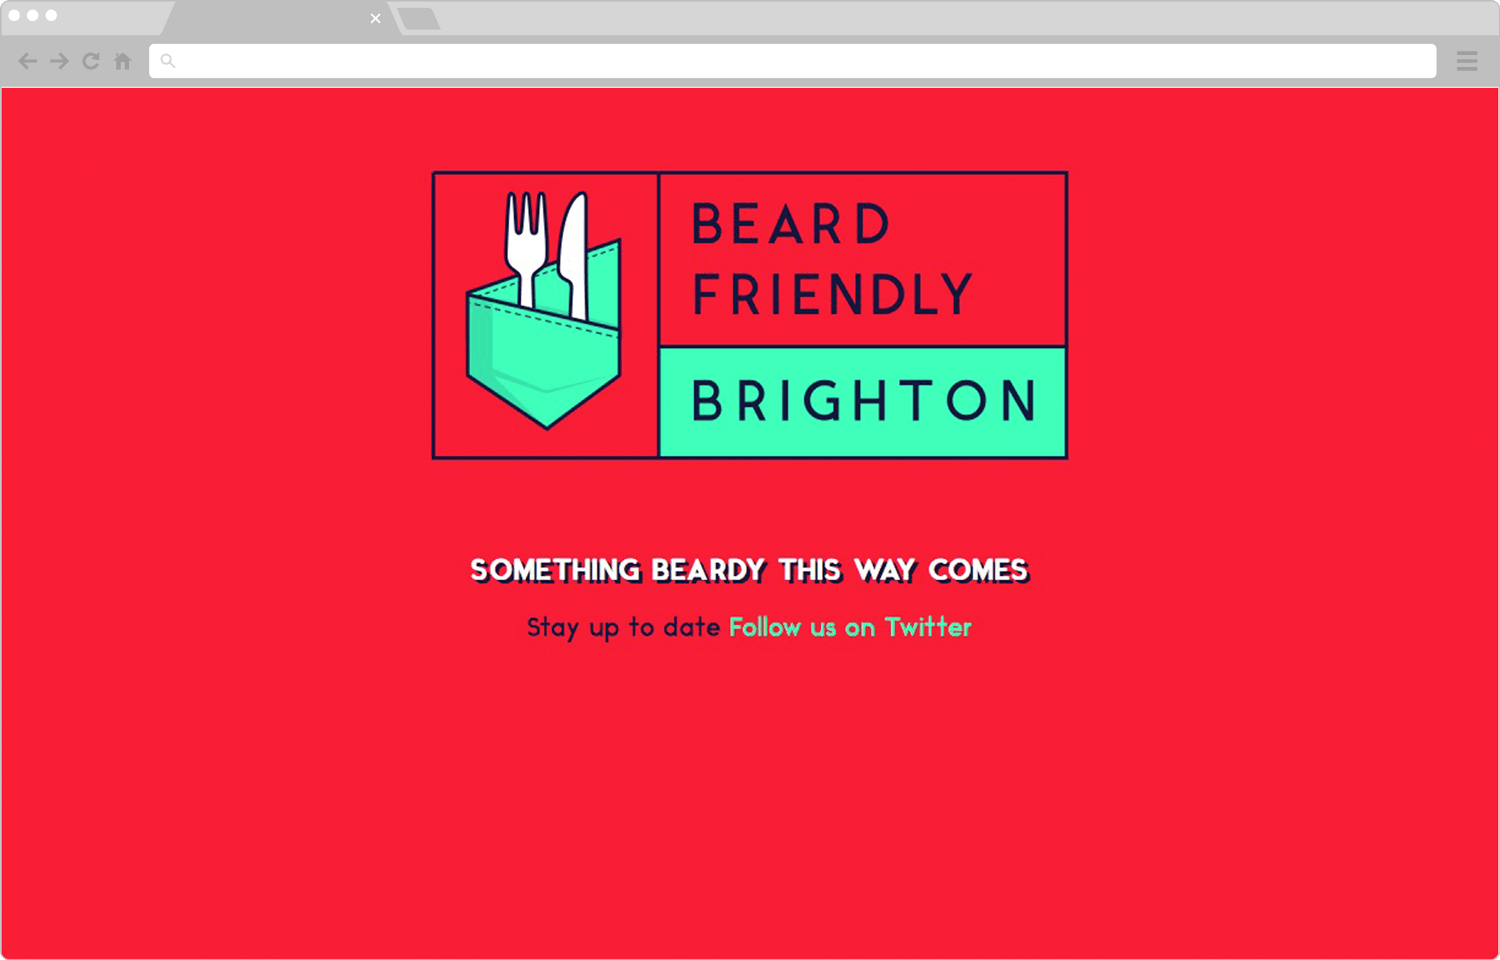 Beard Friendly Brighton